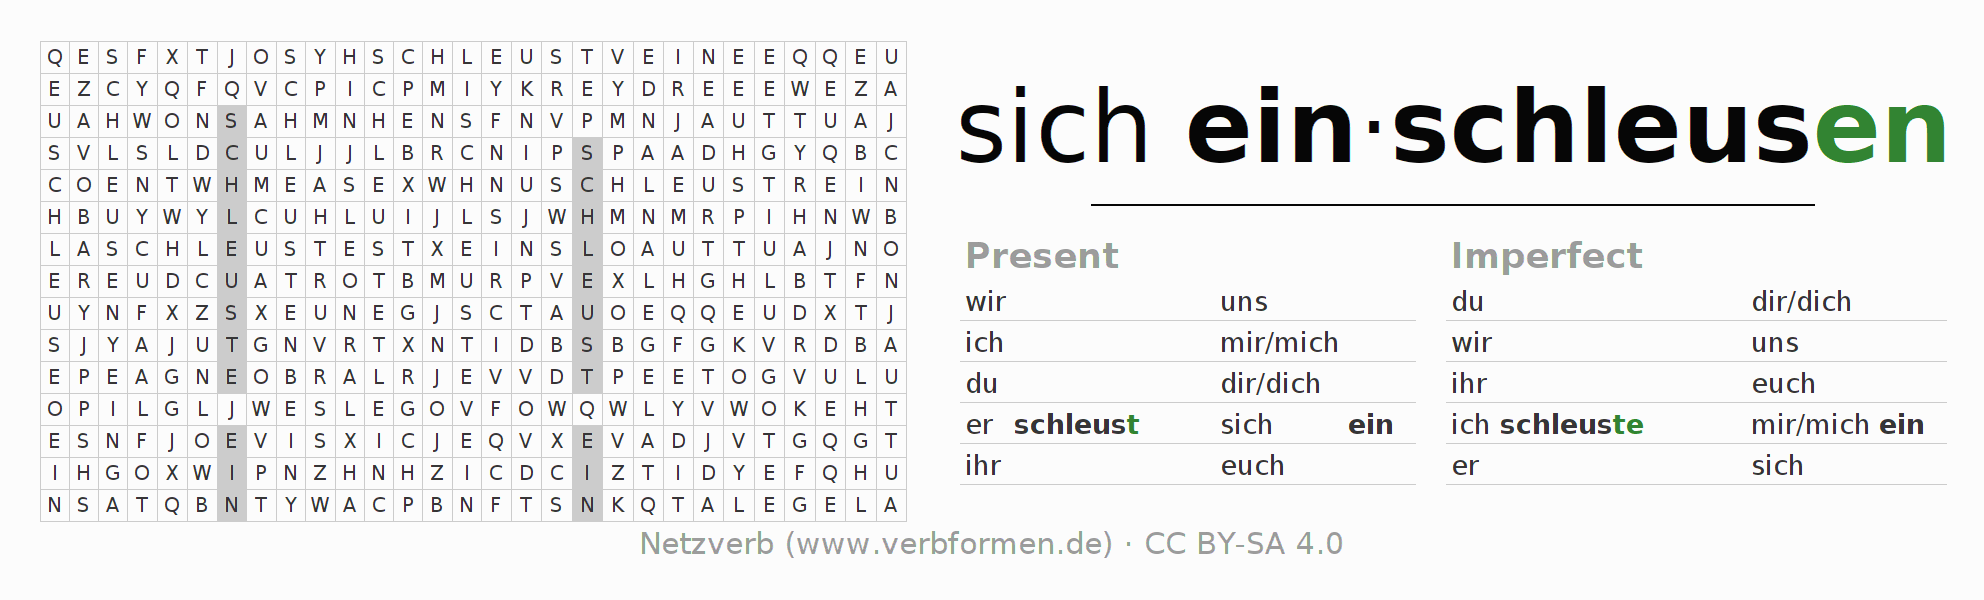 Word search puzzle for the conjugation of the verb sich einschleusen